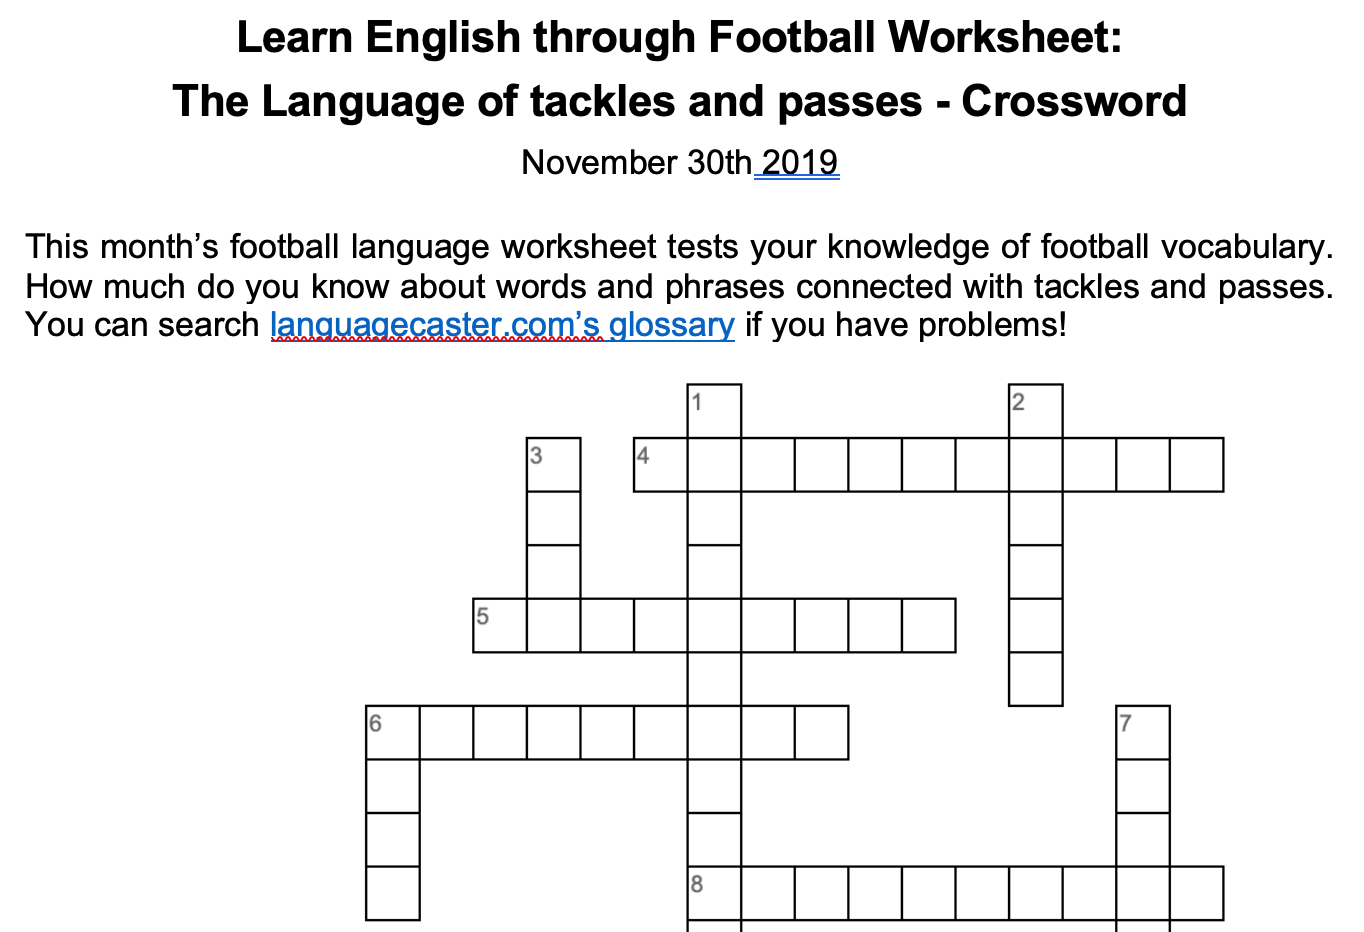 Football Language Crossword: The language of passing and tackling